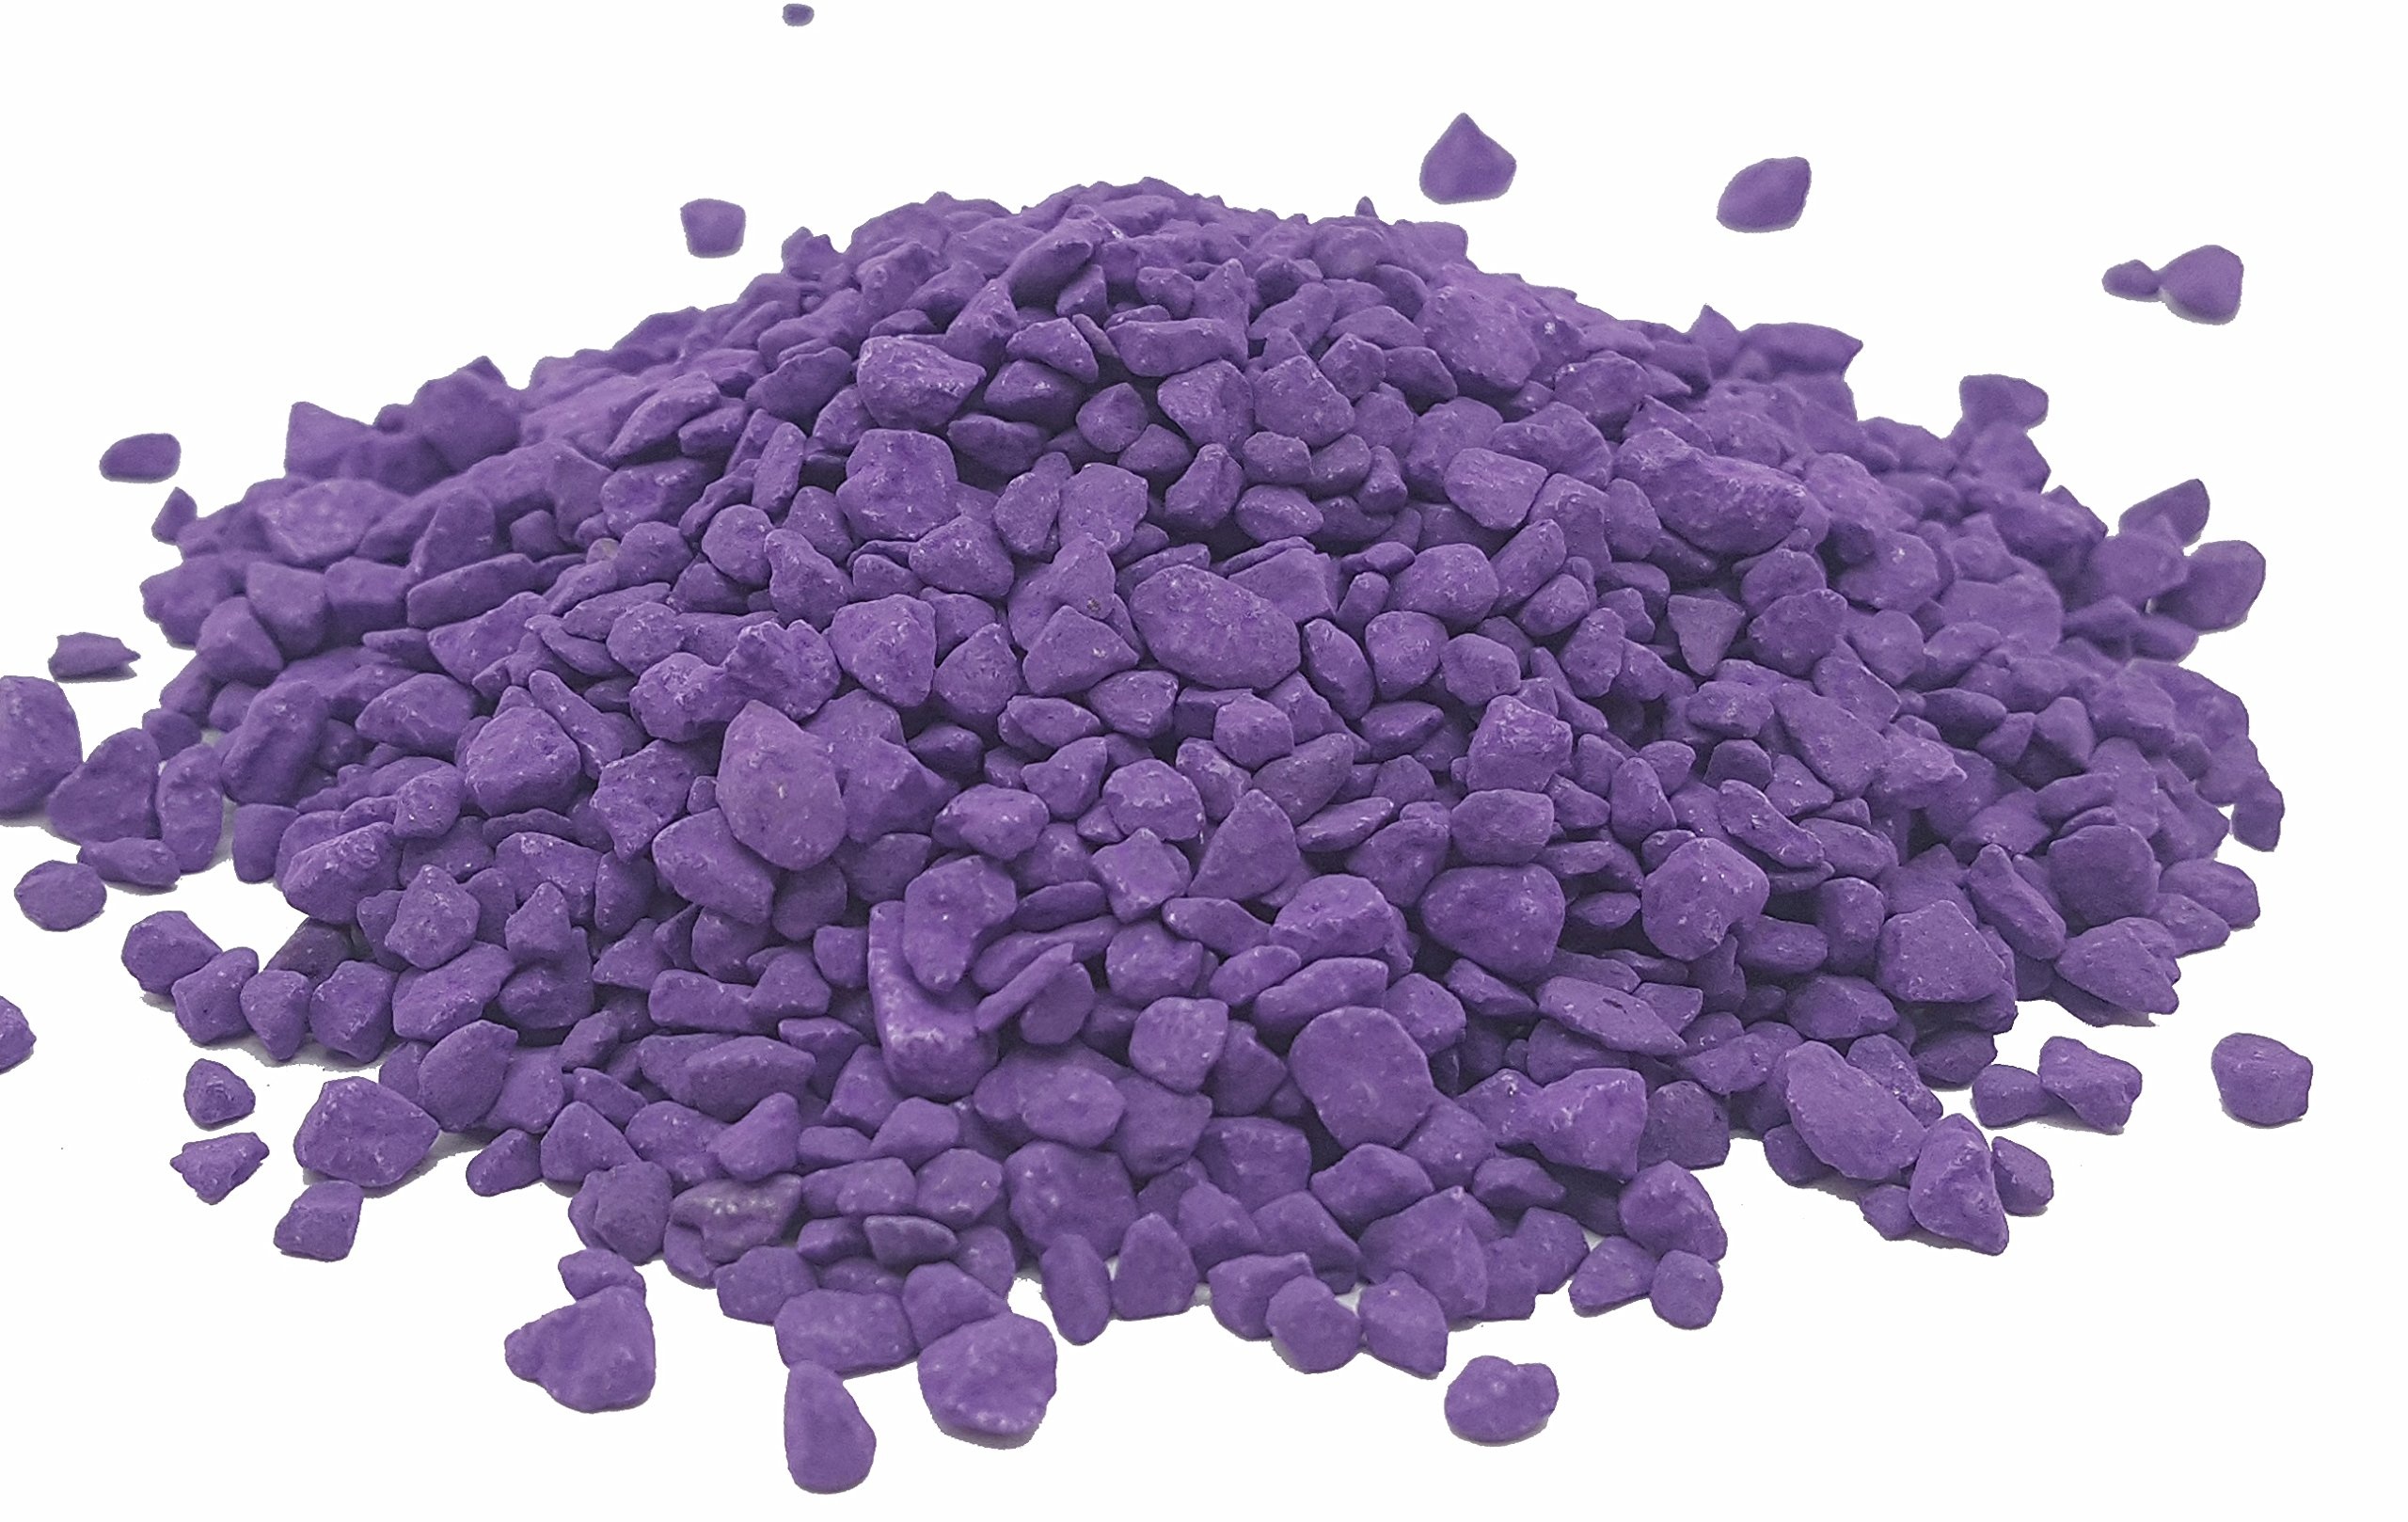 Taygum Eco-Friendly Colored Decorative Gravel, Pebbles, 2.2lb Bag 0.07''~0.2'' Thickness, for Landscaping, Gardening, Home-Deco, Vase Filler, Play Grounds(Purple)